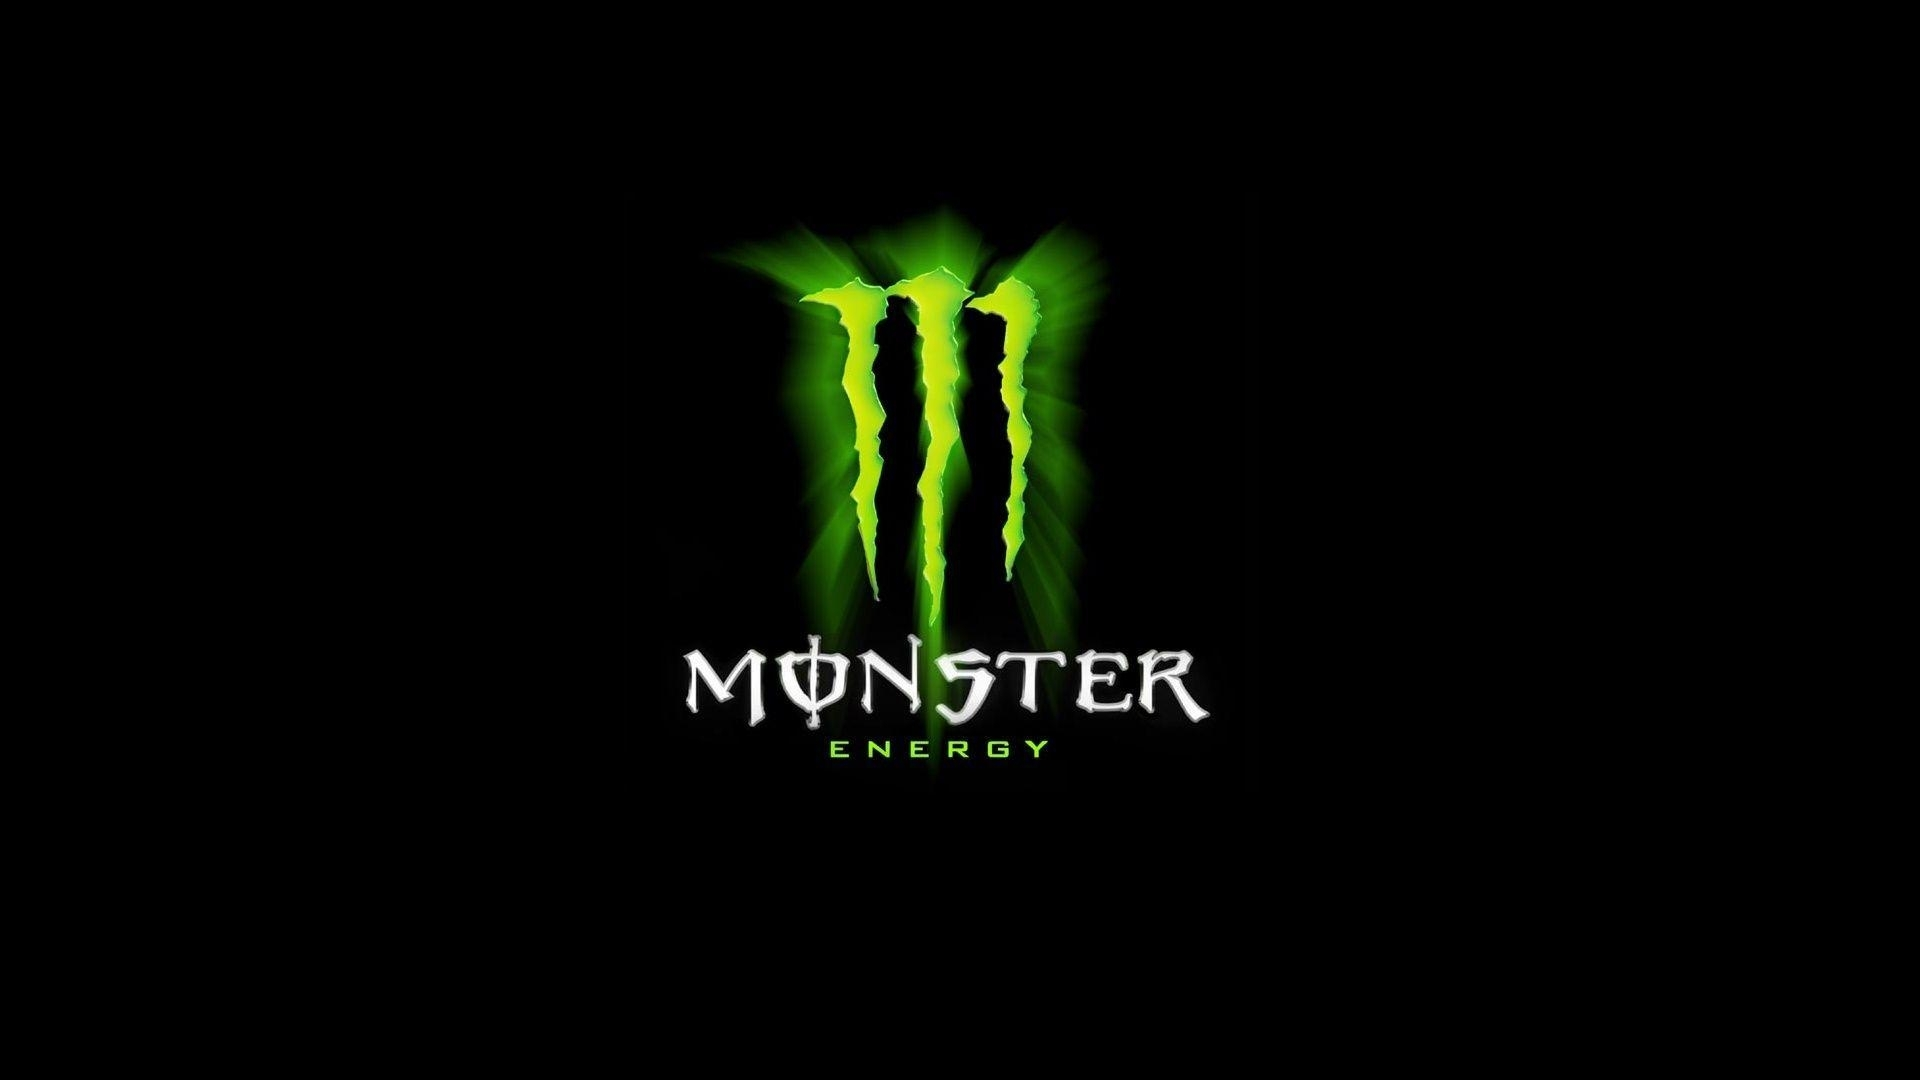 10 New Monster Energy Hd Wallpaper FULL HD 1920×1080 For PC Desktop